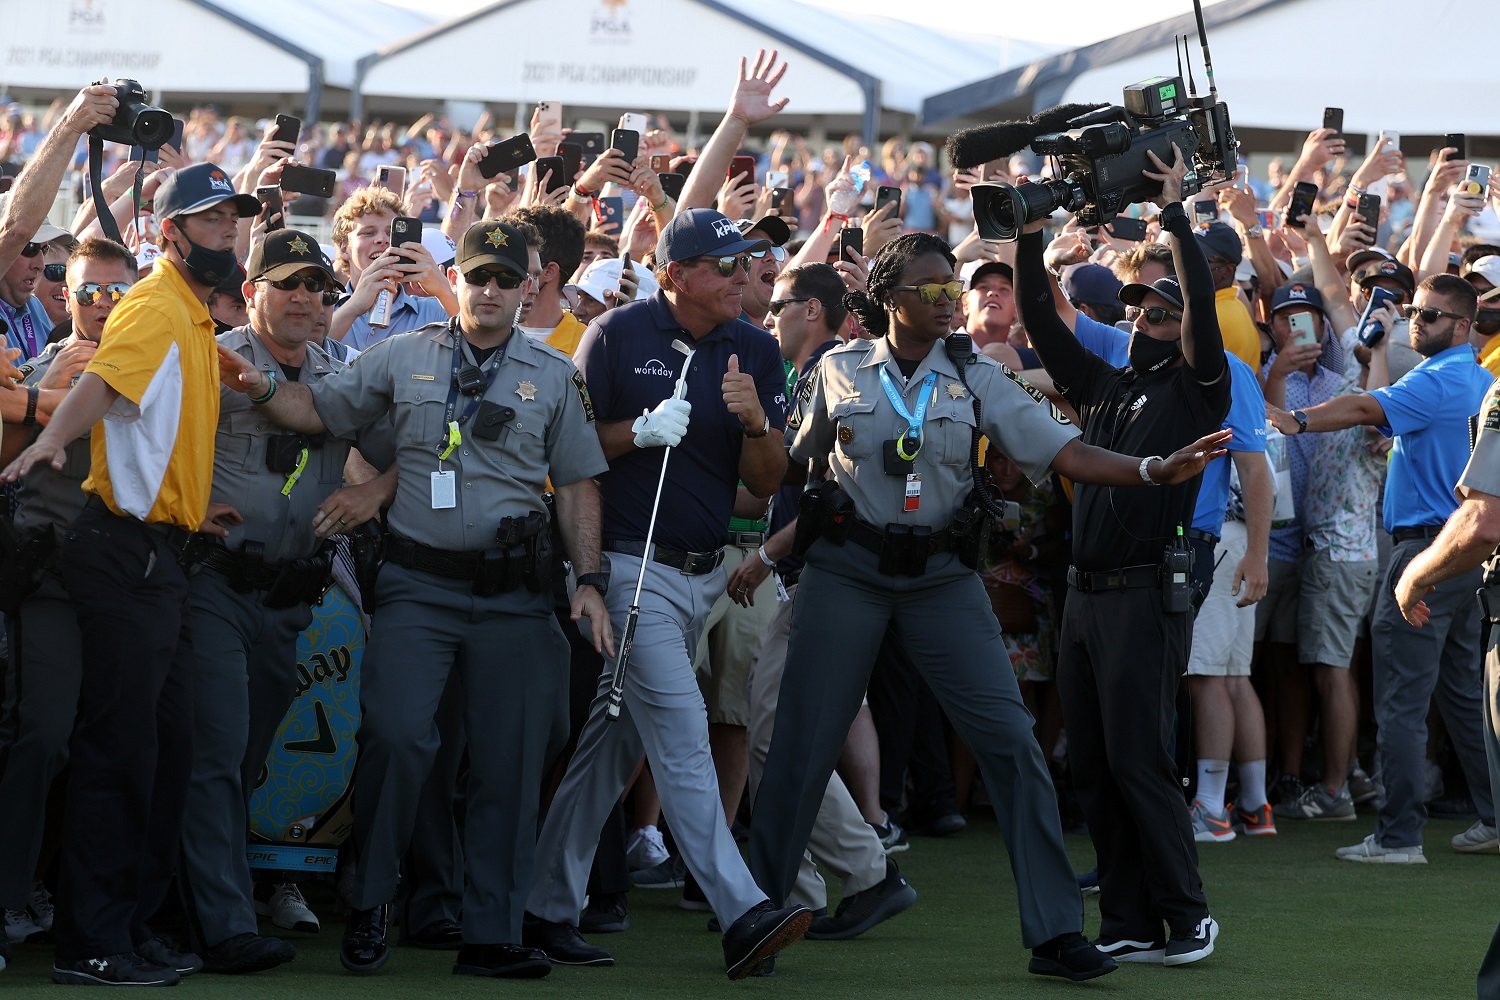 Brooks Koepka Has Every Right To Be Furious Over the PGA Championship Mob Scene That Too Many People Think Was Cool